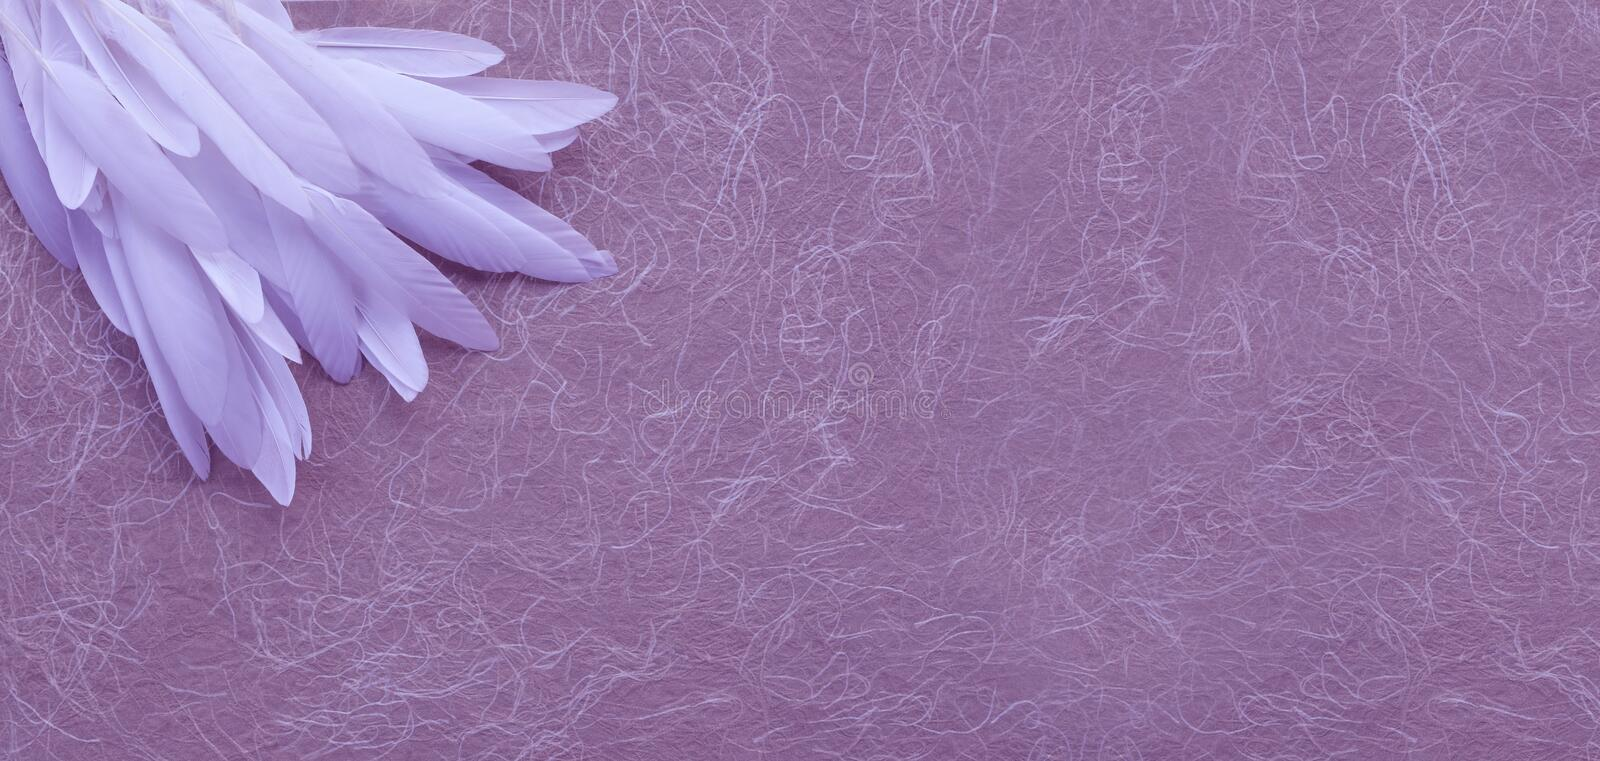 Angelic White Feather Corner Dusky Pink Background. A random pile of long thin white feathers placed in the top left corner against a rustic swirly handmade pink royalty free stock photography